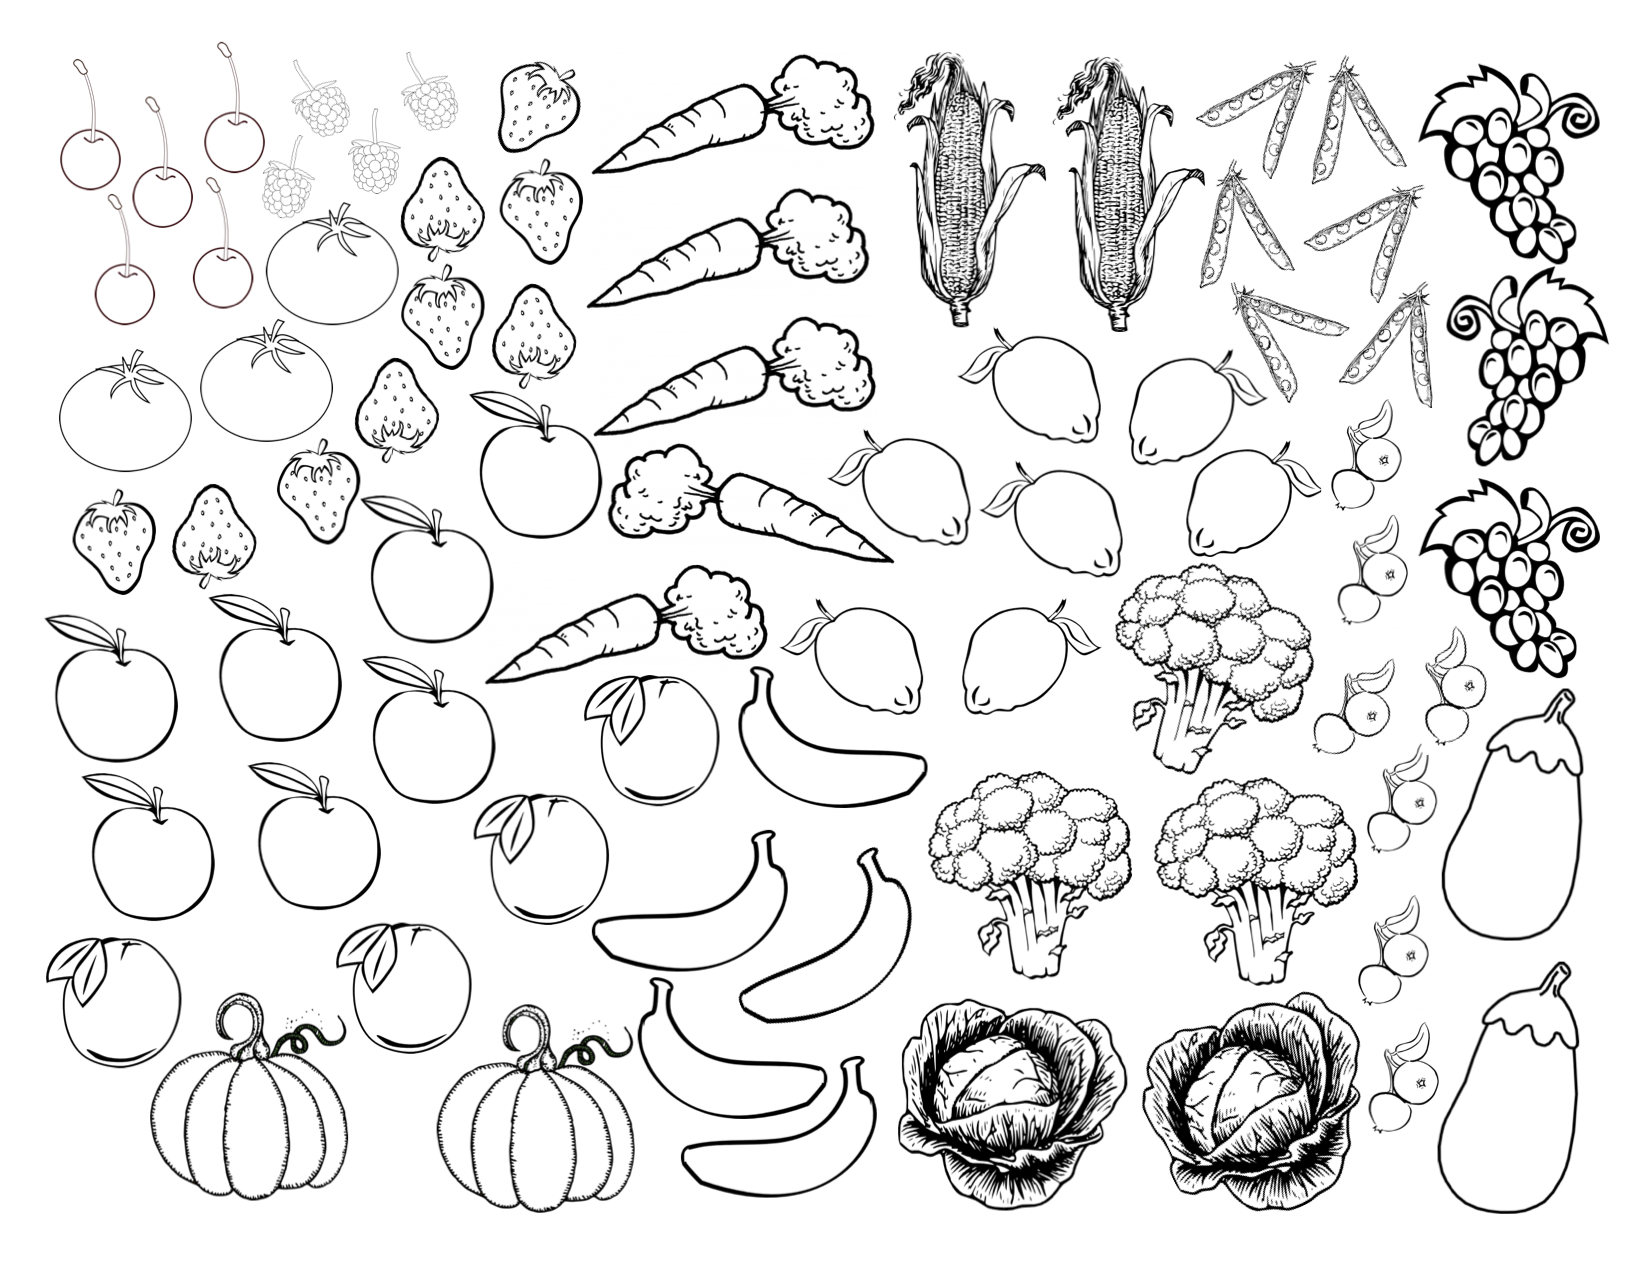 Fruits Vegetables Coloring Sheet - Colorine.net | #17628